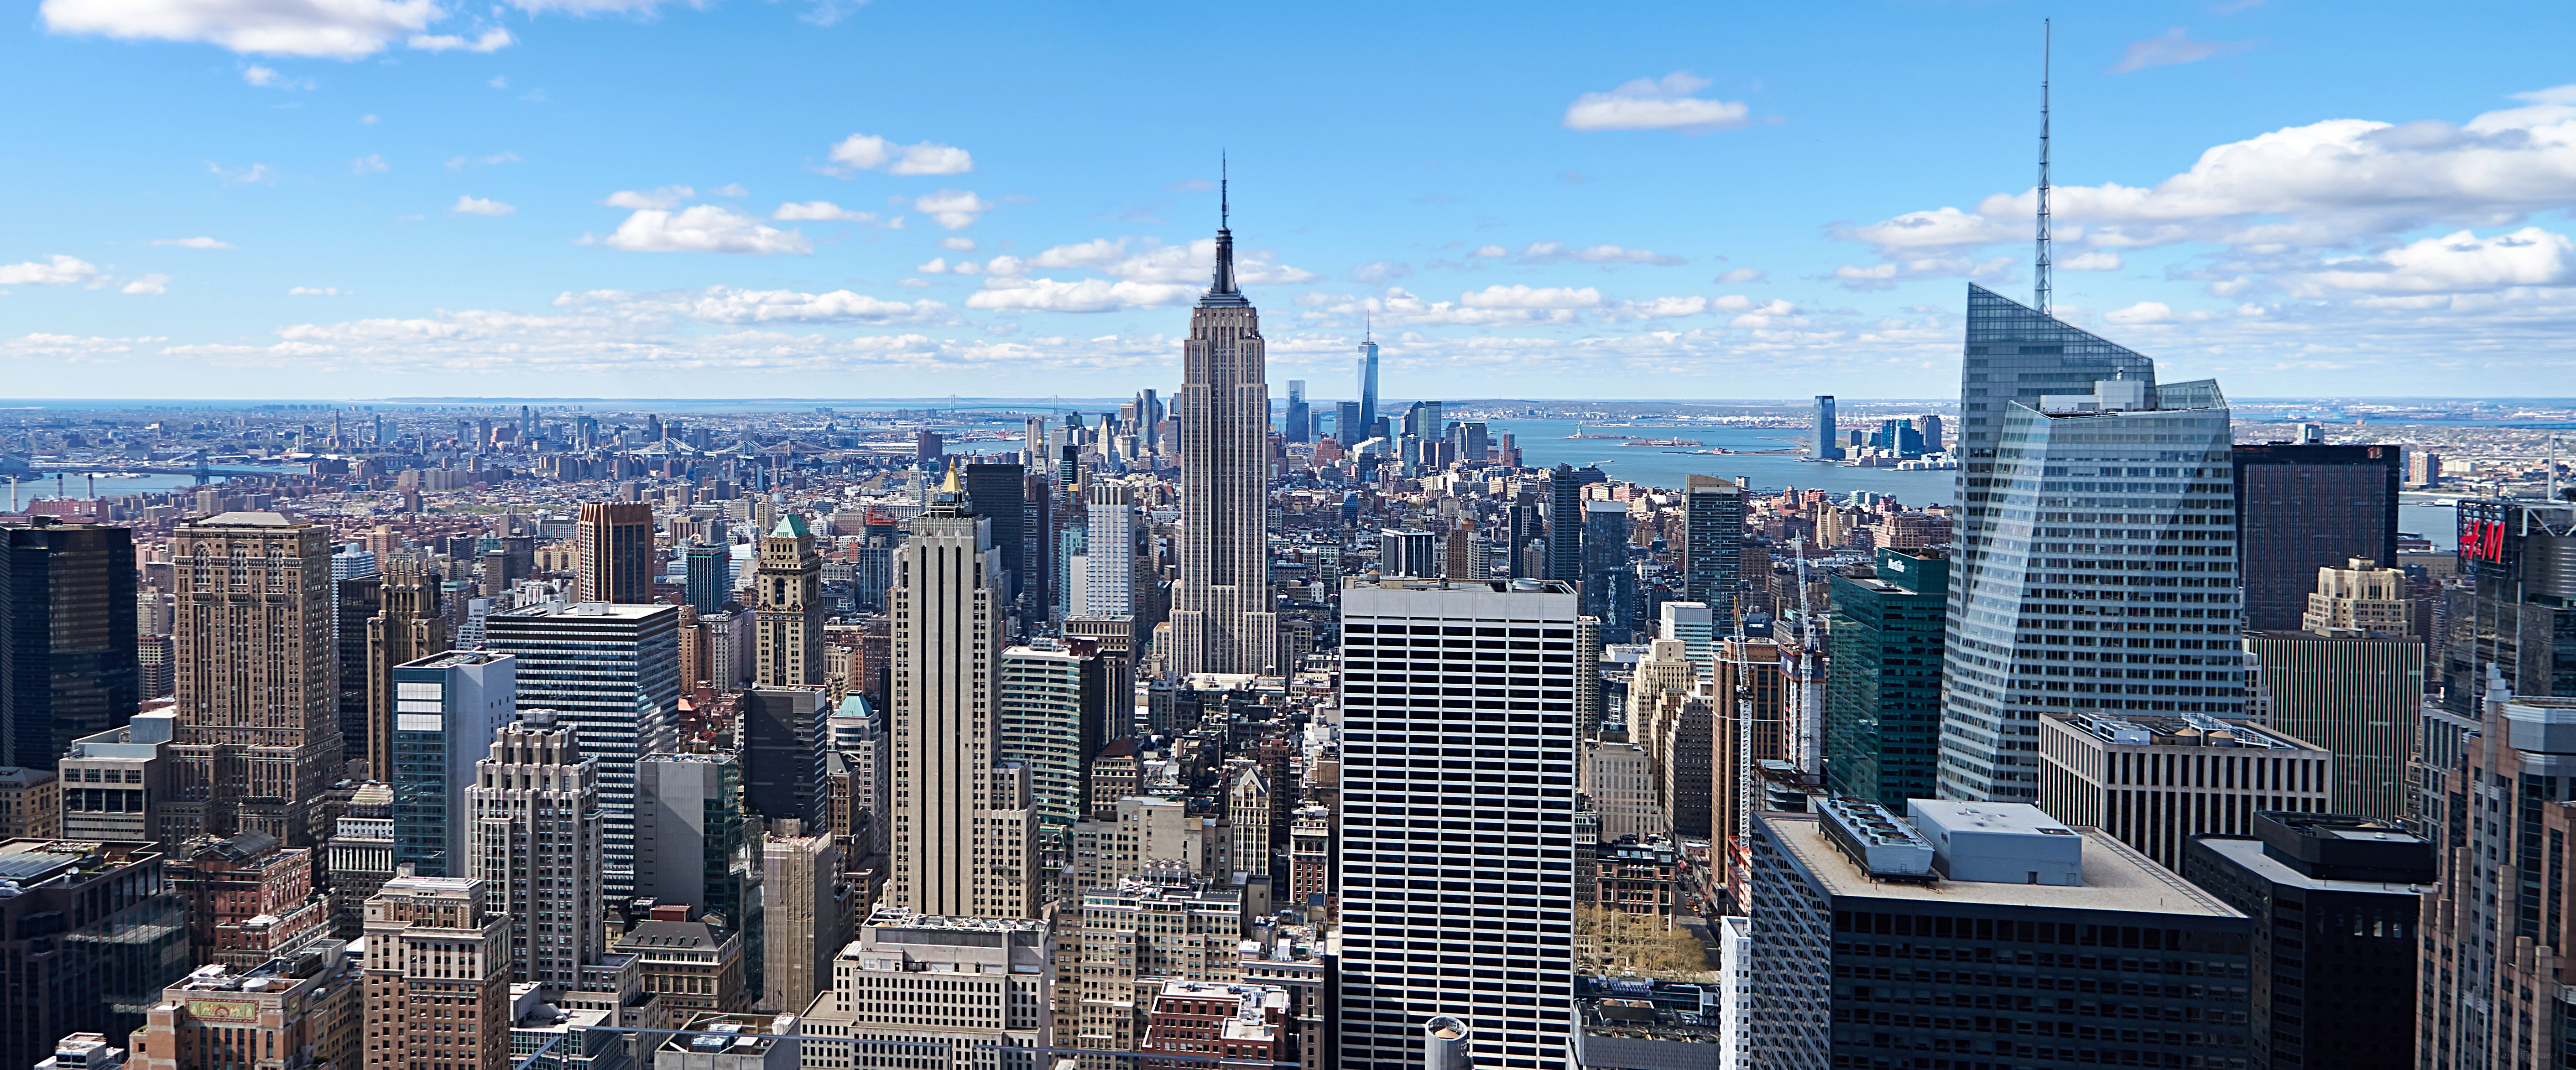 Download Wallpaper 2560x1600 New york, Buildings, Sky, View from ...